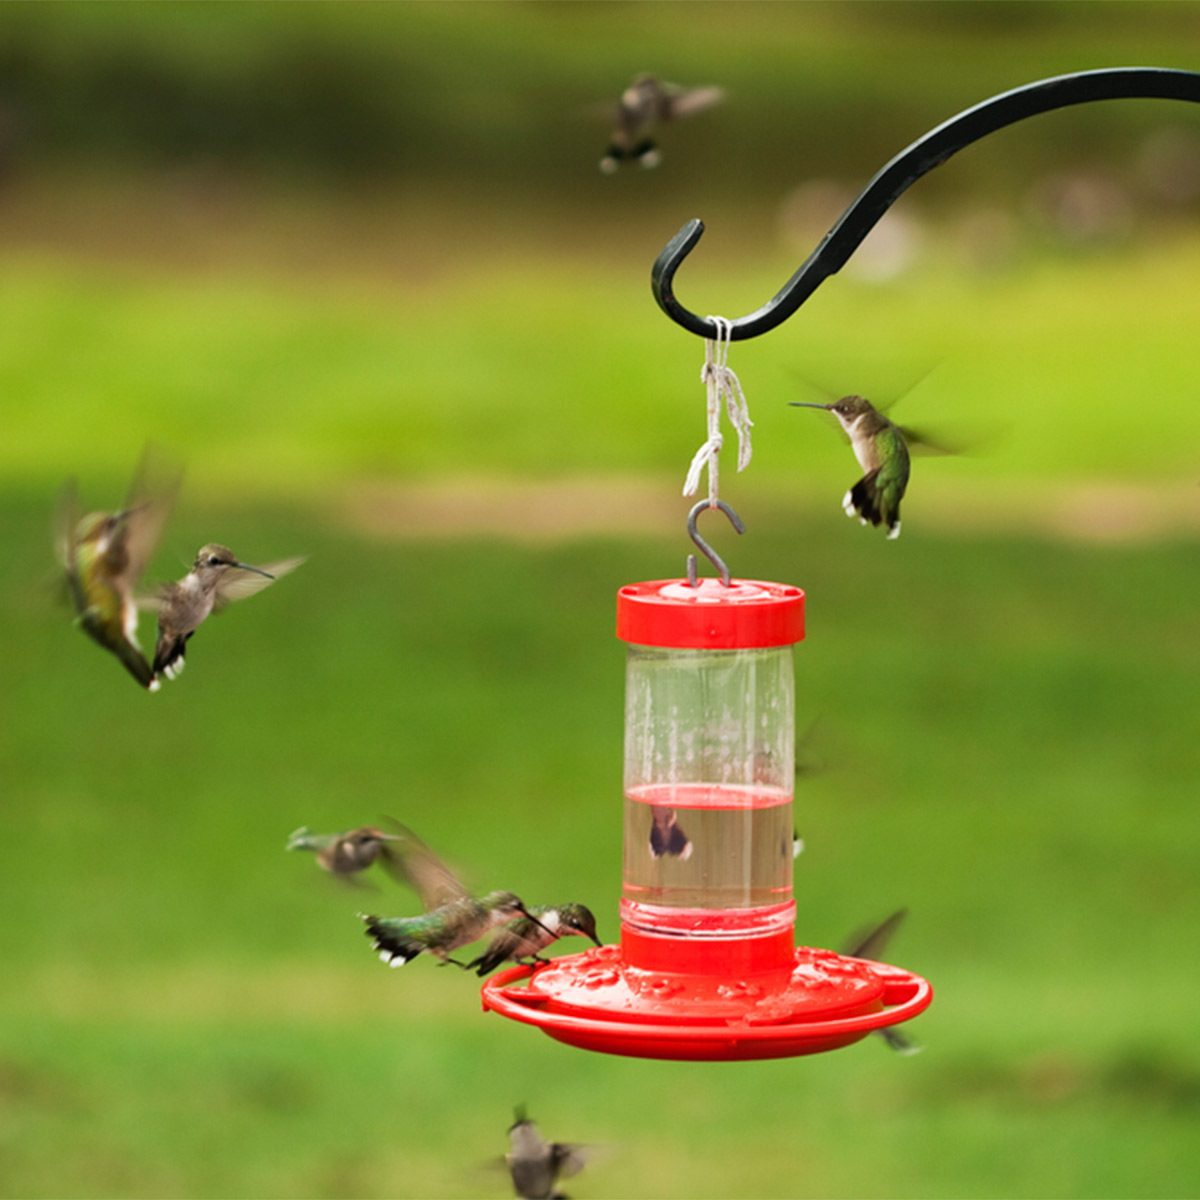 many hummingbirds fighting